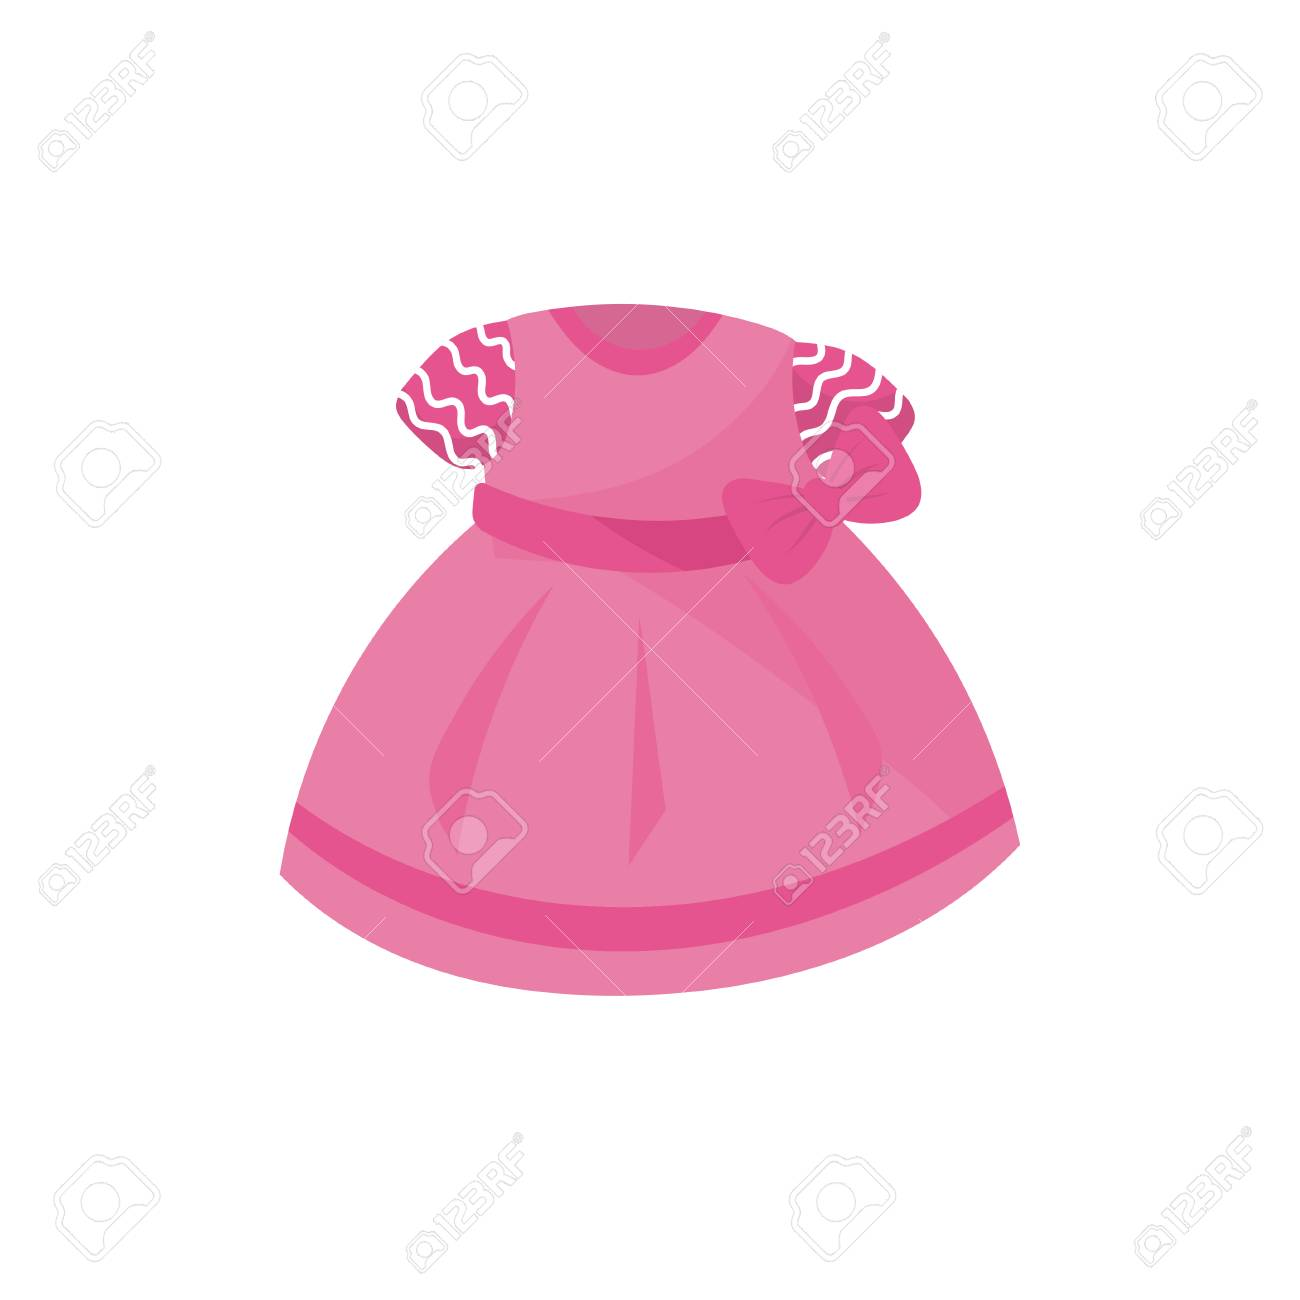 e1f5f84d5 Icon of adorable pink dress with bow for little girl. Baby fashion. Apparel  for